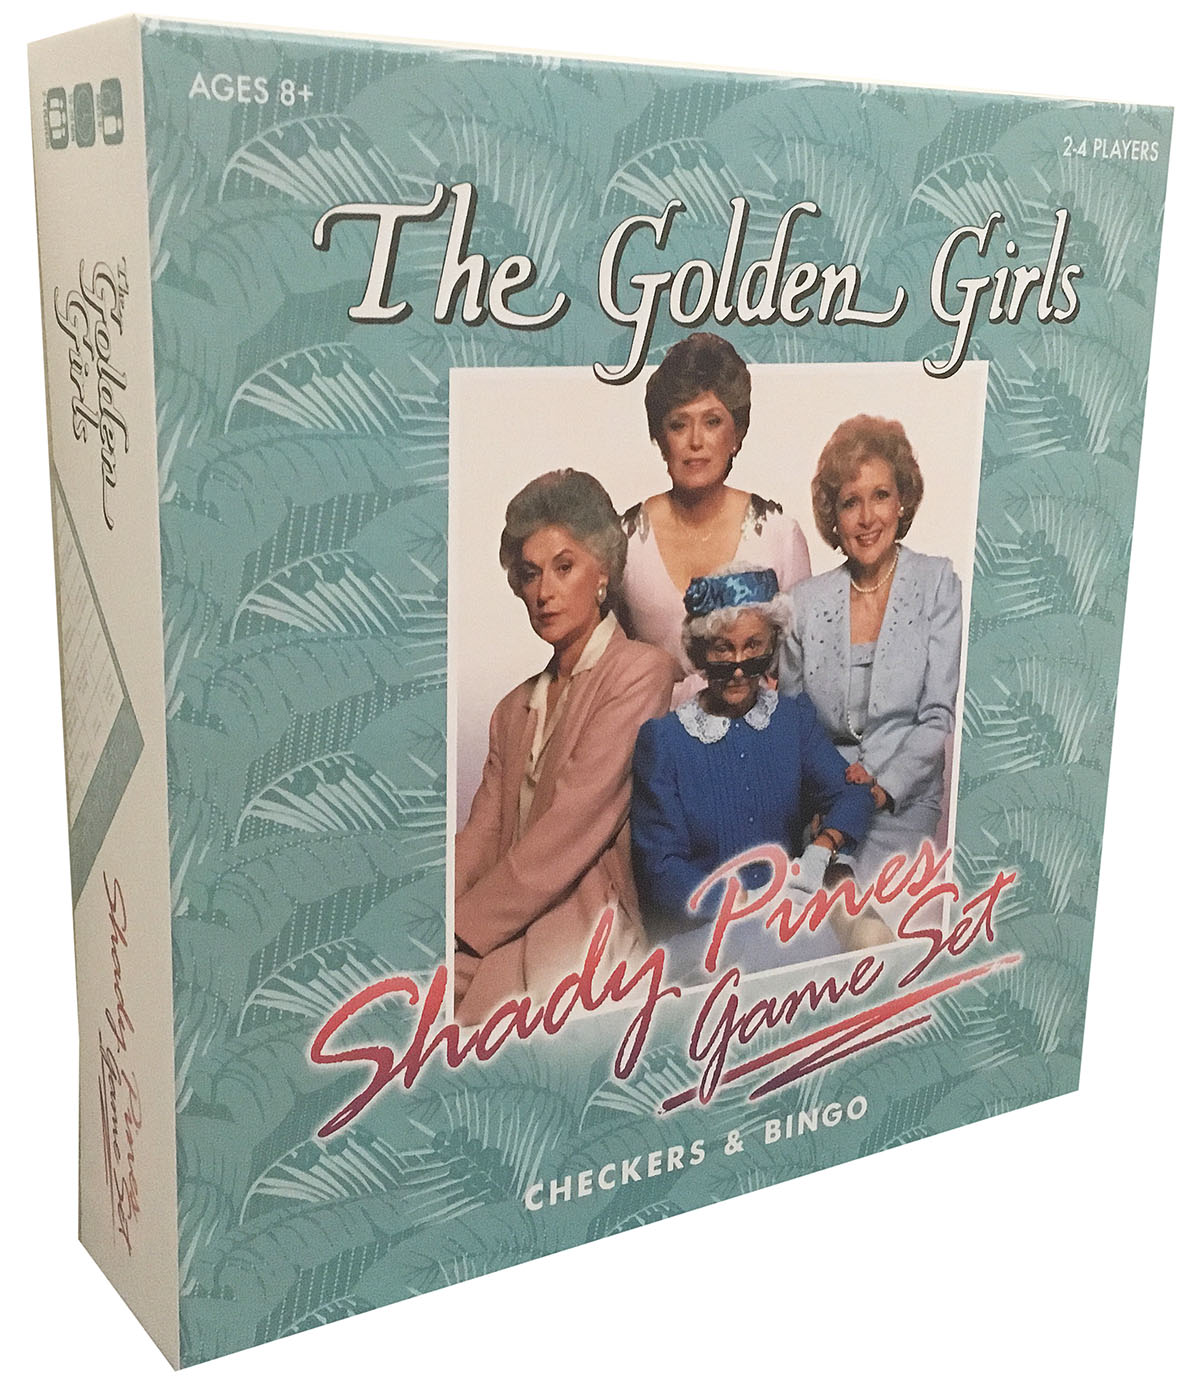 Golden Girls Checkers